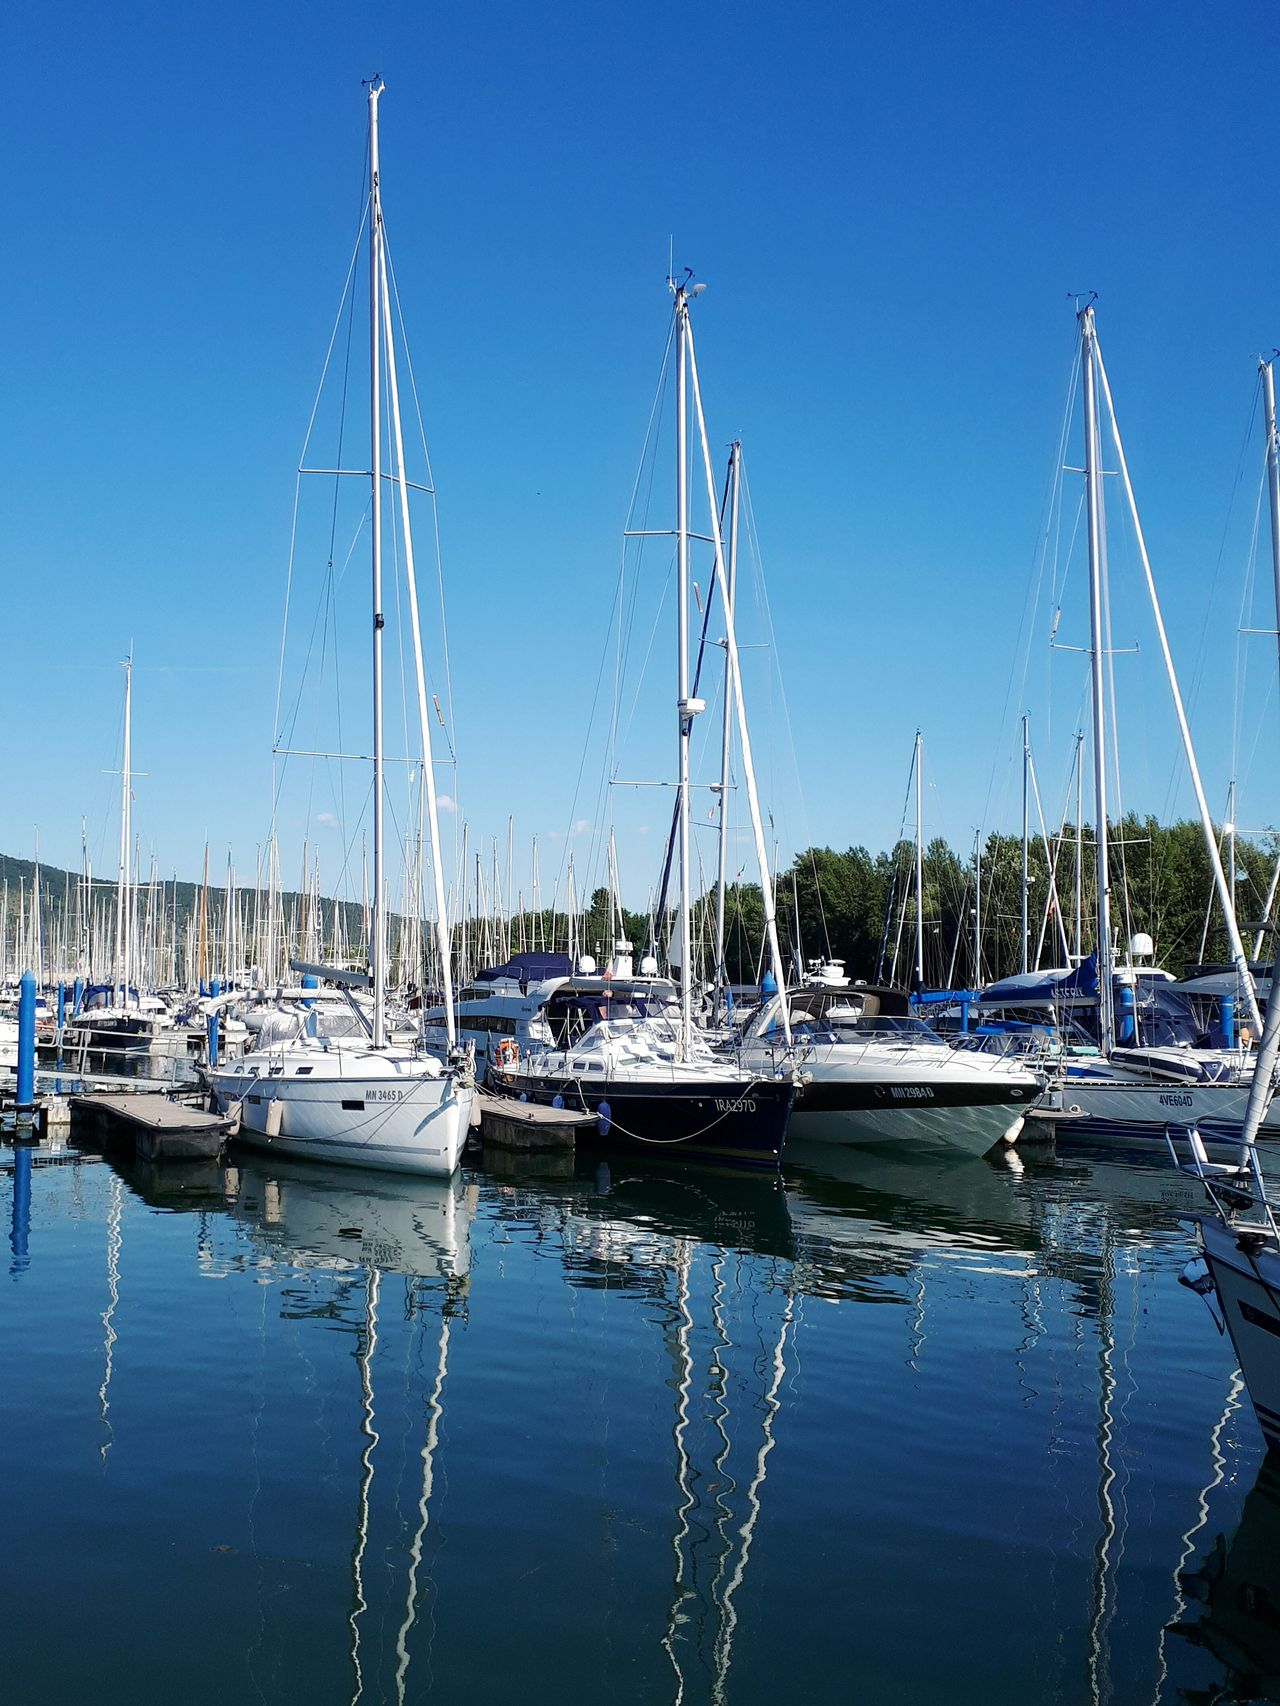 Nautical Vessel Water Harbor Sailboat Sky No People Mode Of Transport Reflection Transportation Marina Scenics Day Tranquility Outdoors Sea Water Reflections Nautic Club Pier